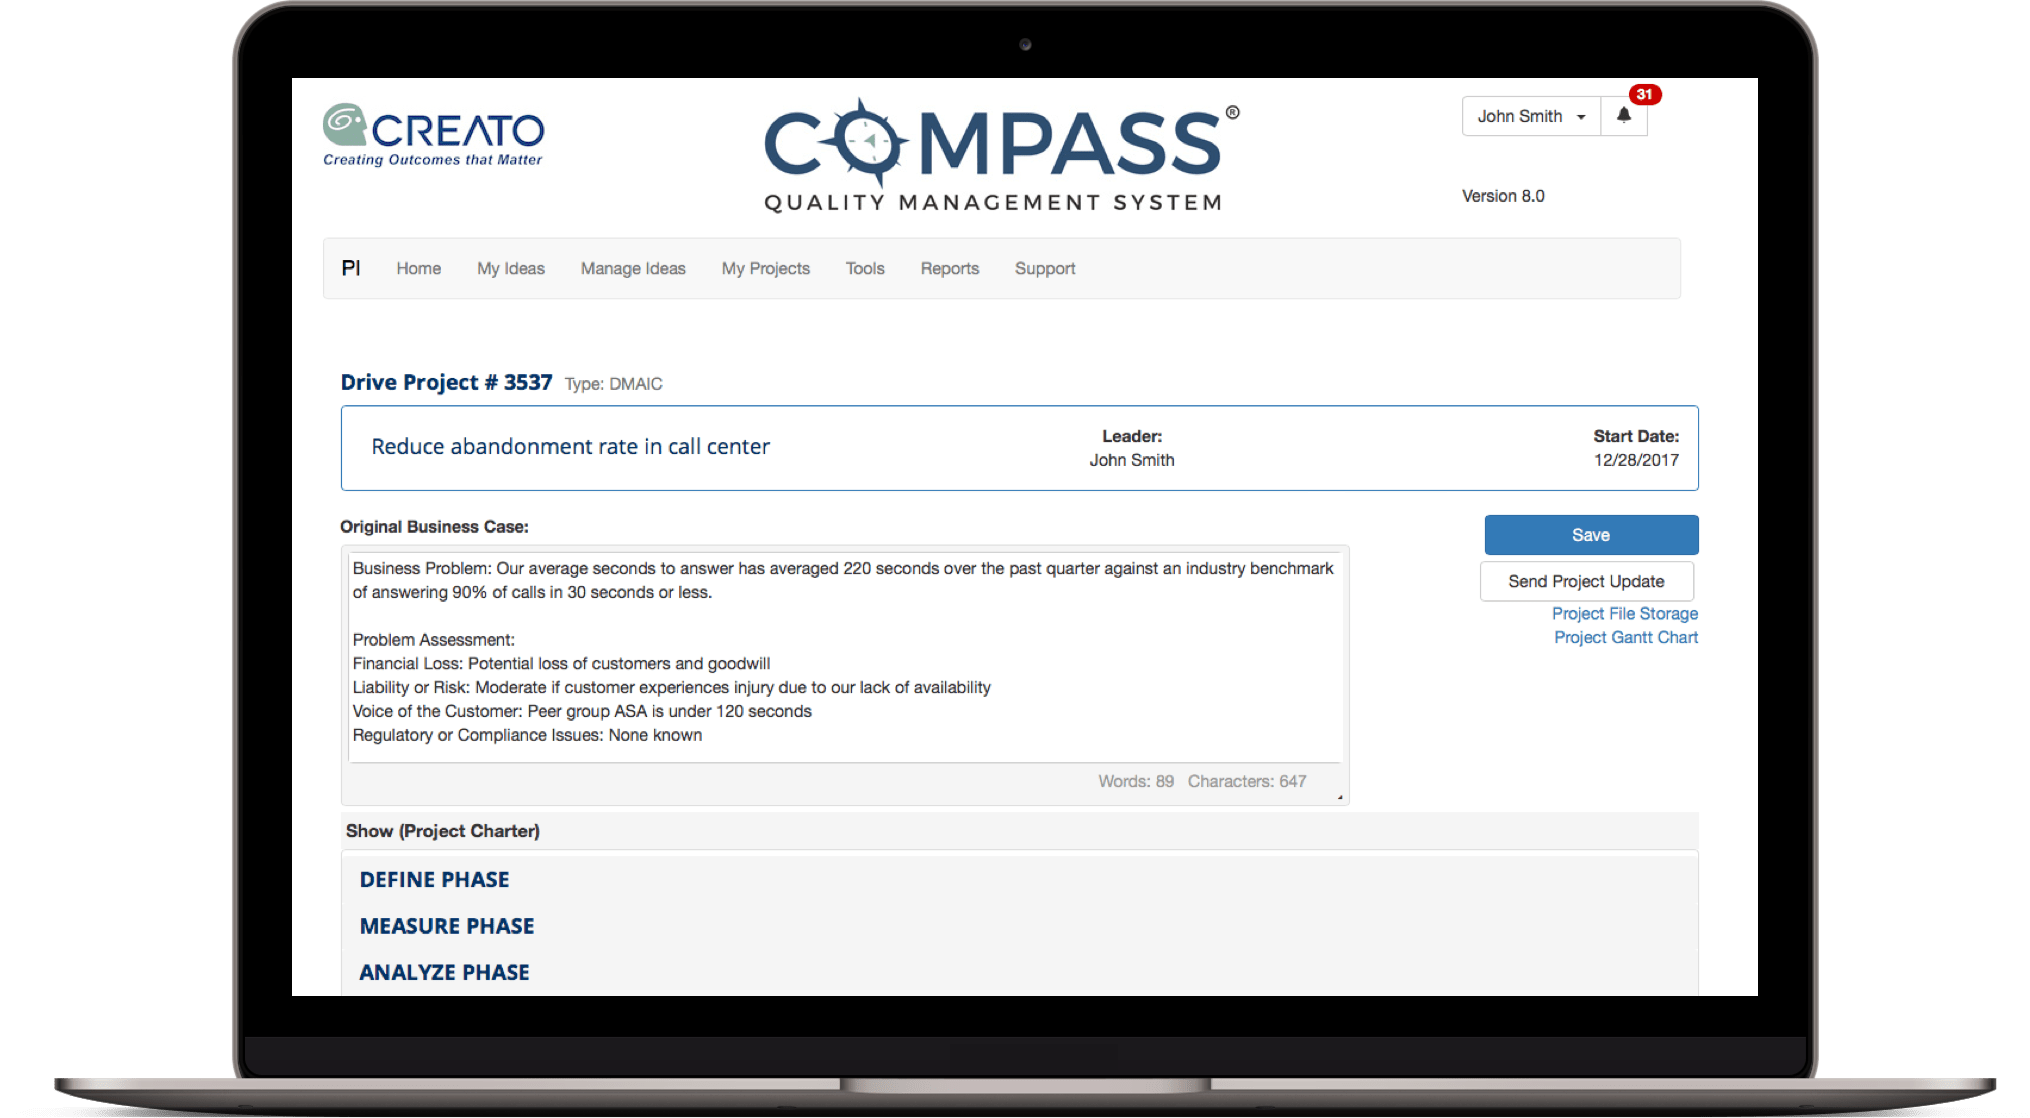 Screenshot of Compass Quality Management System  drive project screen